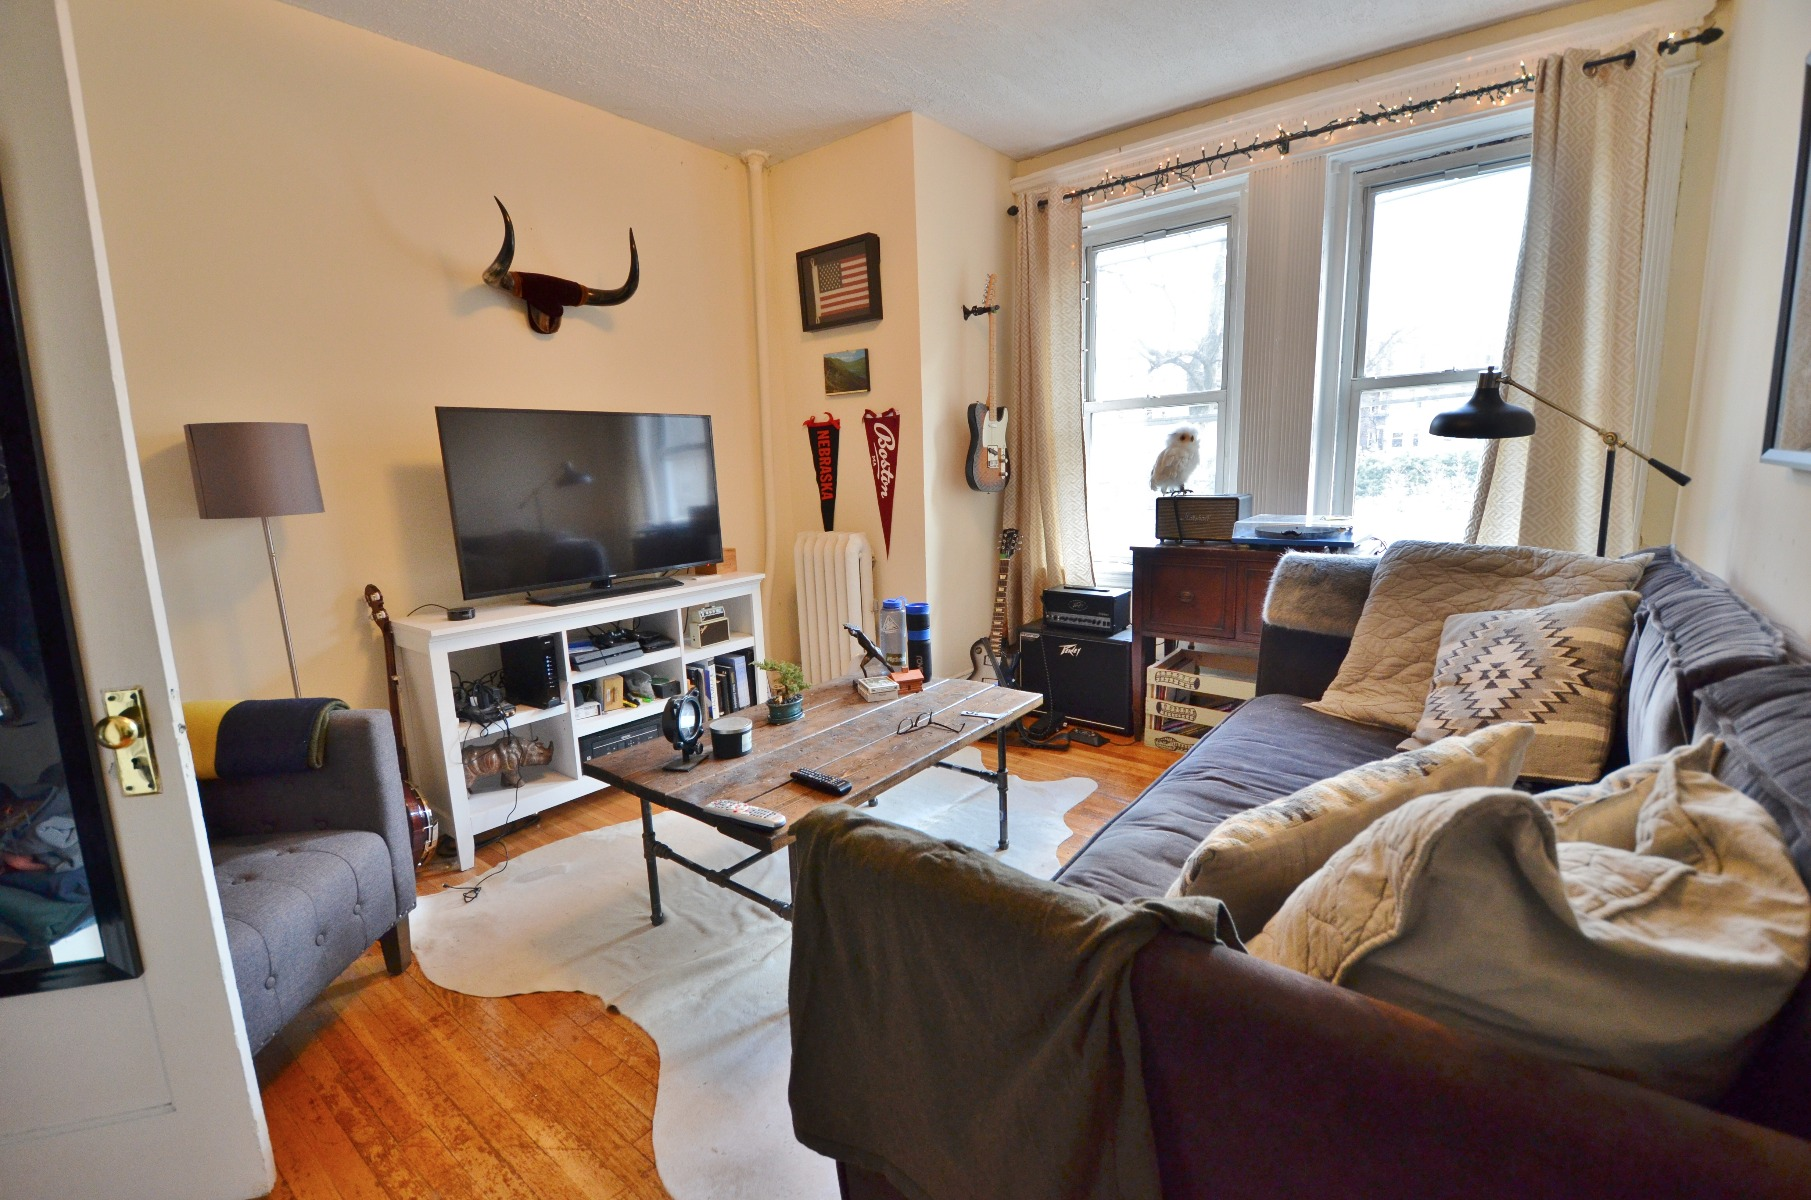 Avail 9/1 - Comfortable Awesome 1 BR on Peterborough St